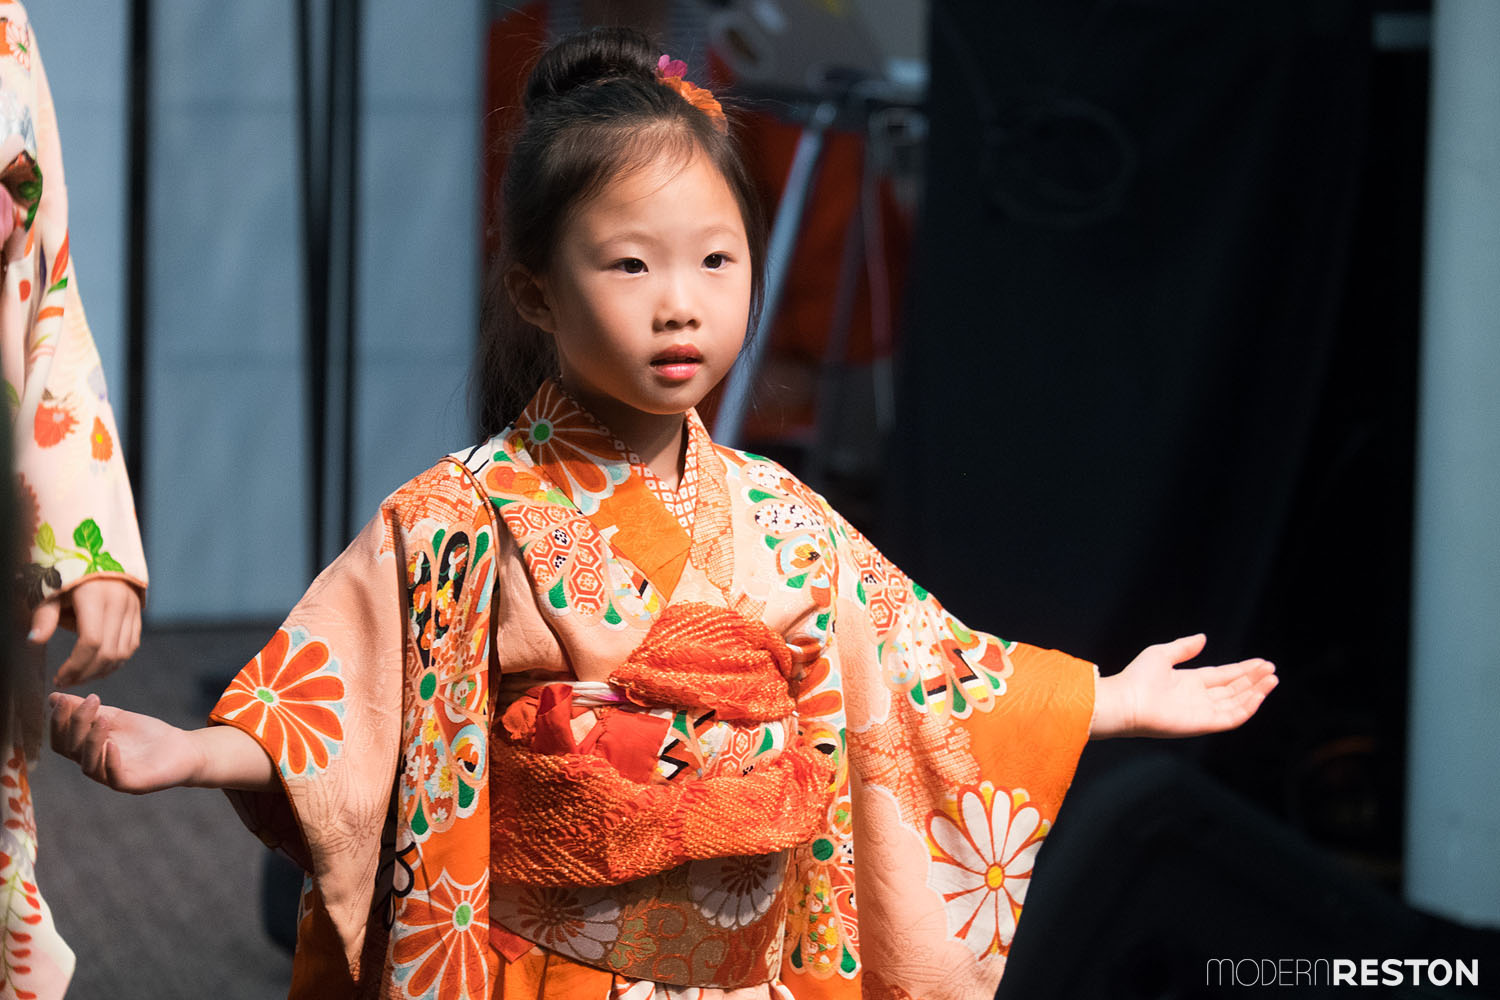 Japanese Culture Club (Kimono fashion show)